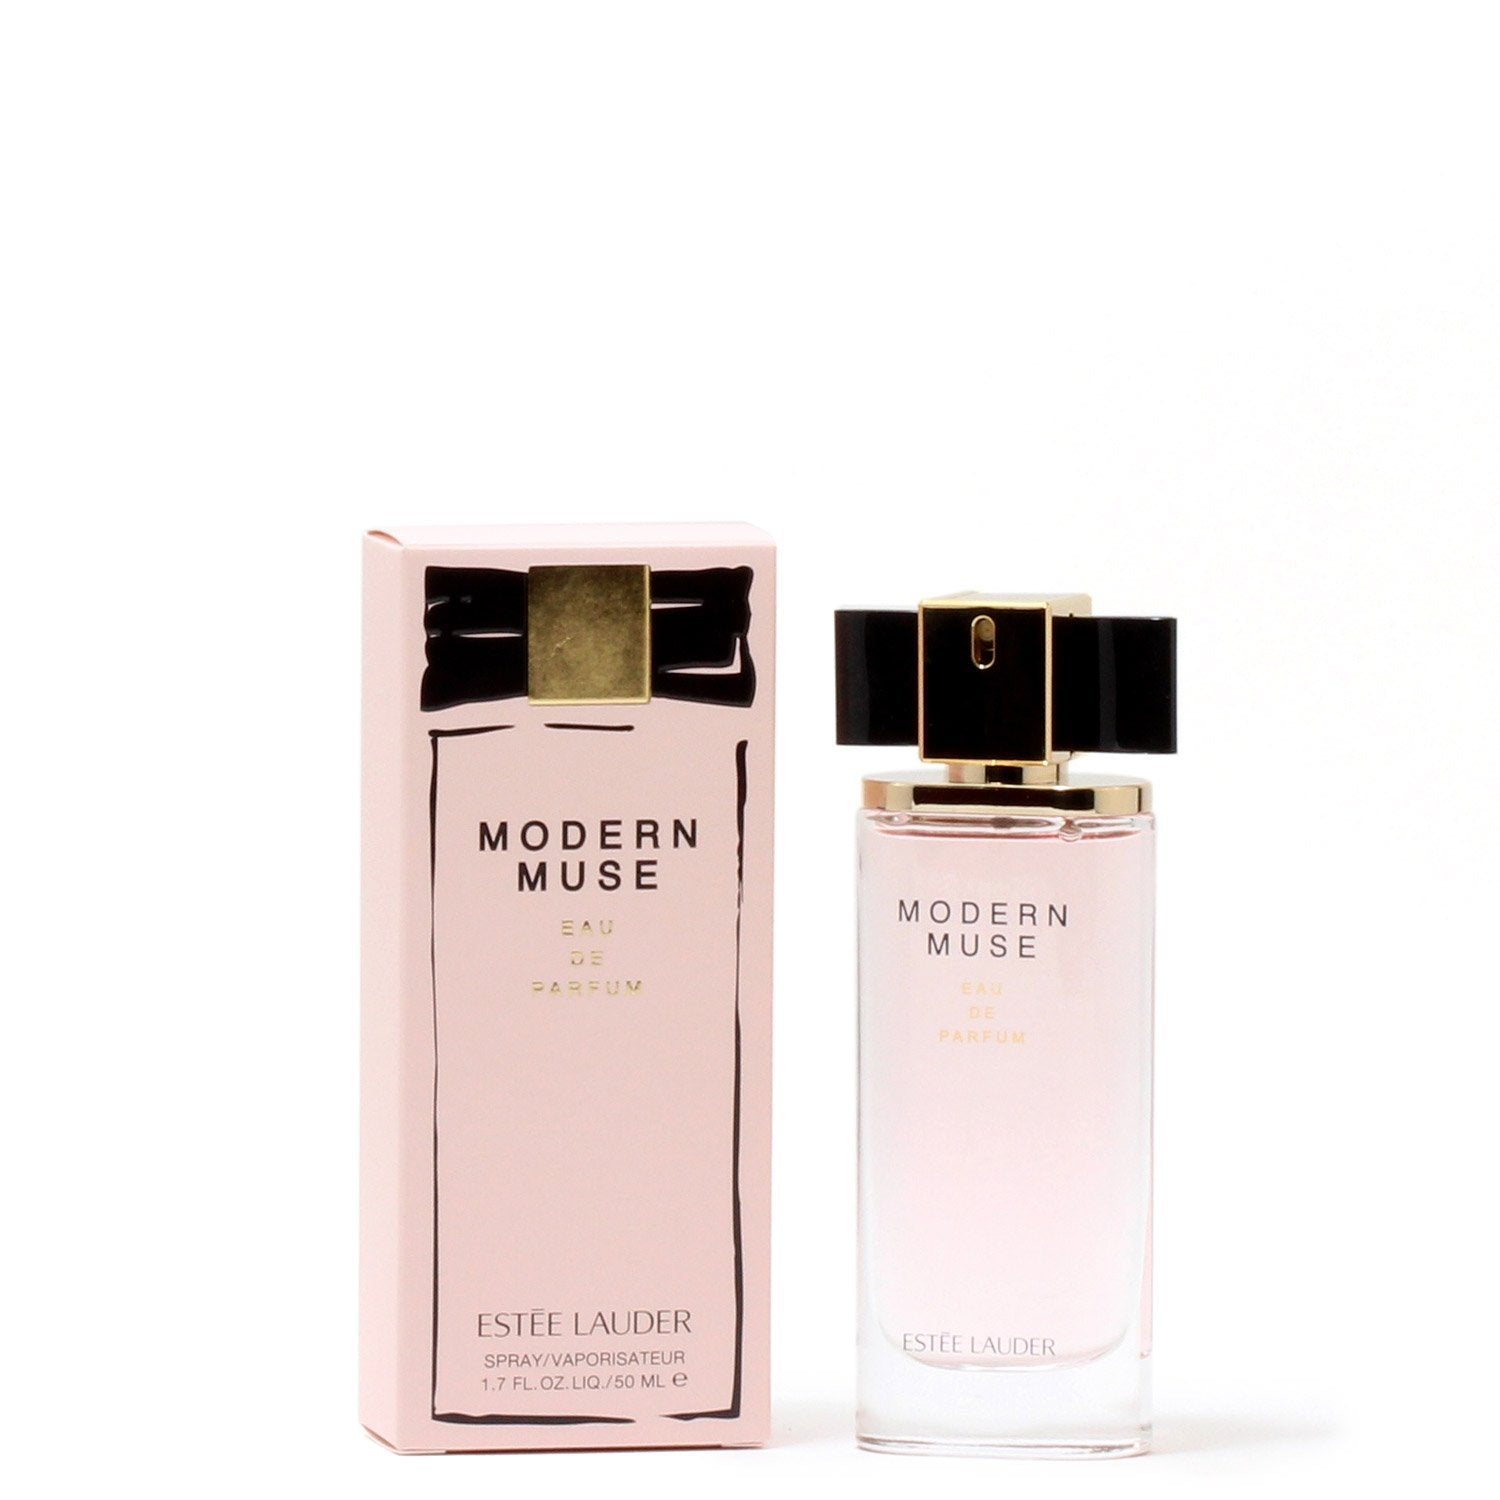 Perfume - ESTEE LAUDER MODERN MUSE FOR WOMEN - EAU DE PARFUM SPRAY